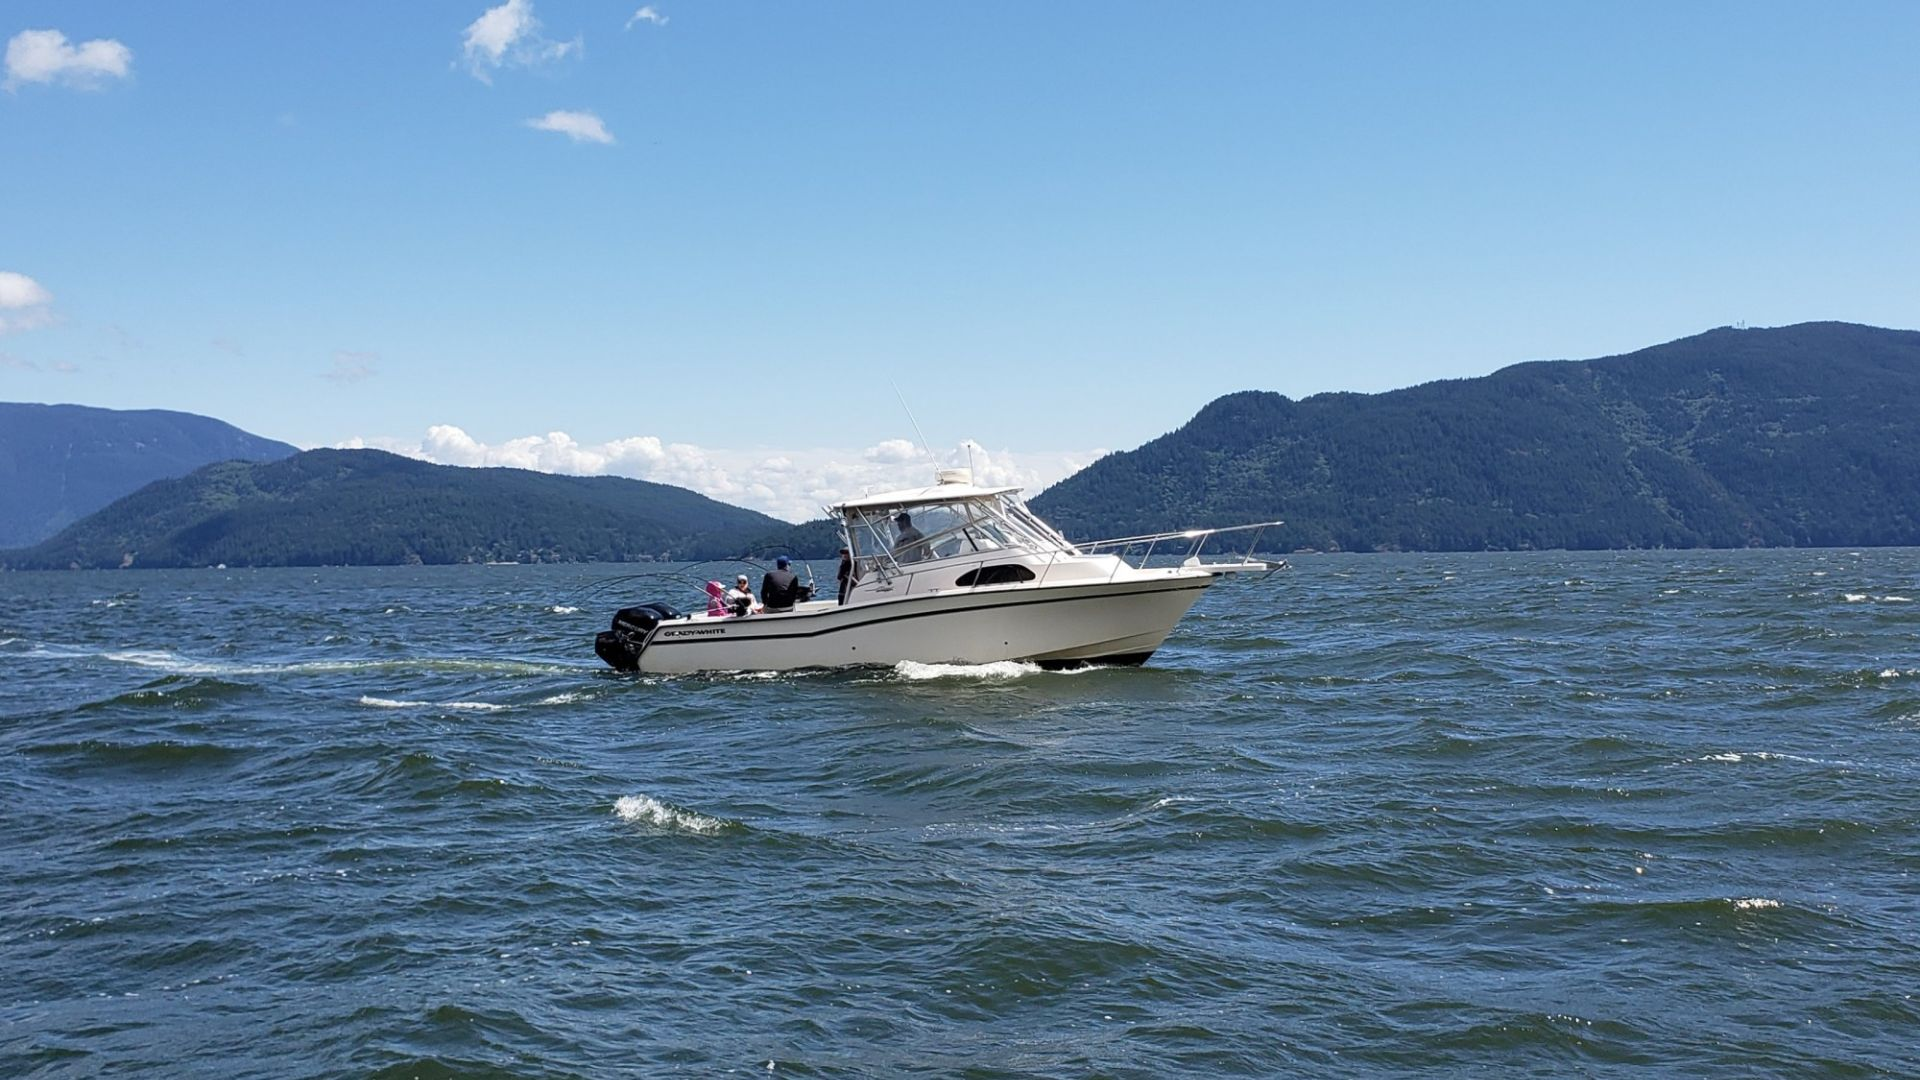 vancouver bc salmon fishing charters bon chovy salmon fishing charters